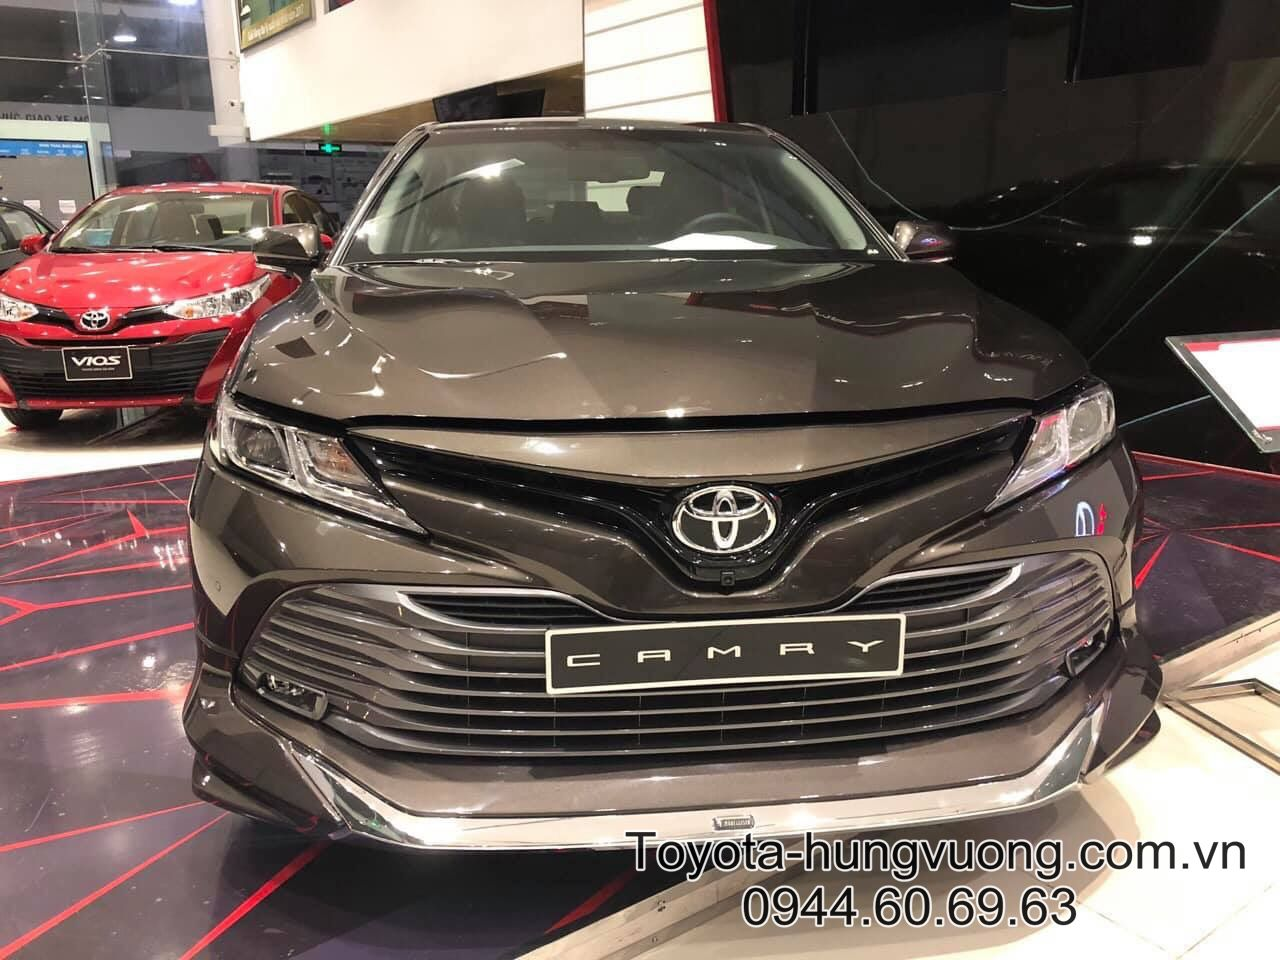 toyota-camry-2020-ghi-4x7